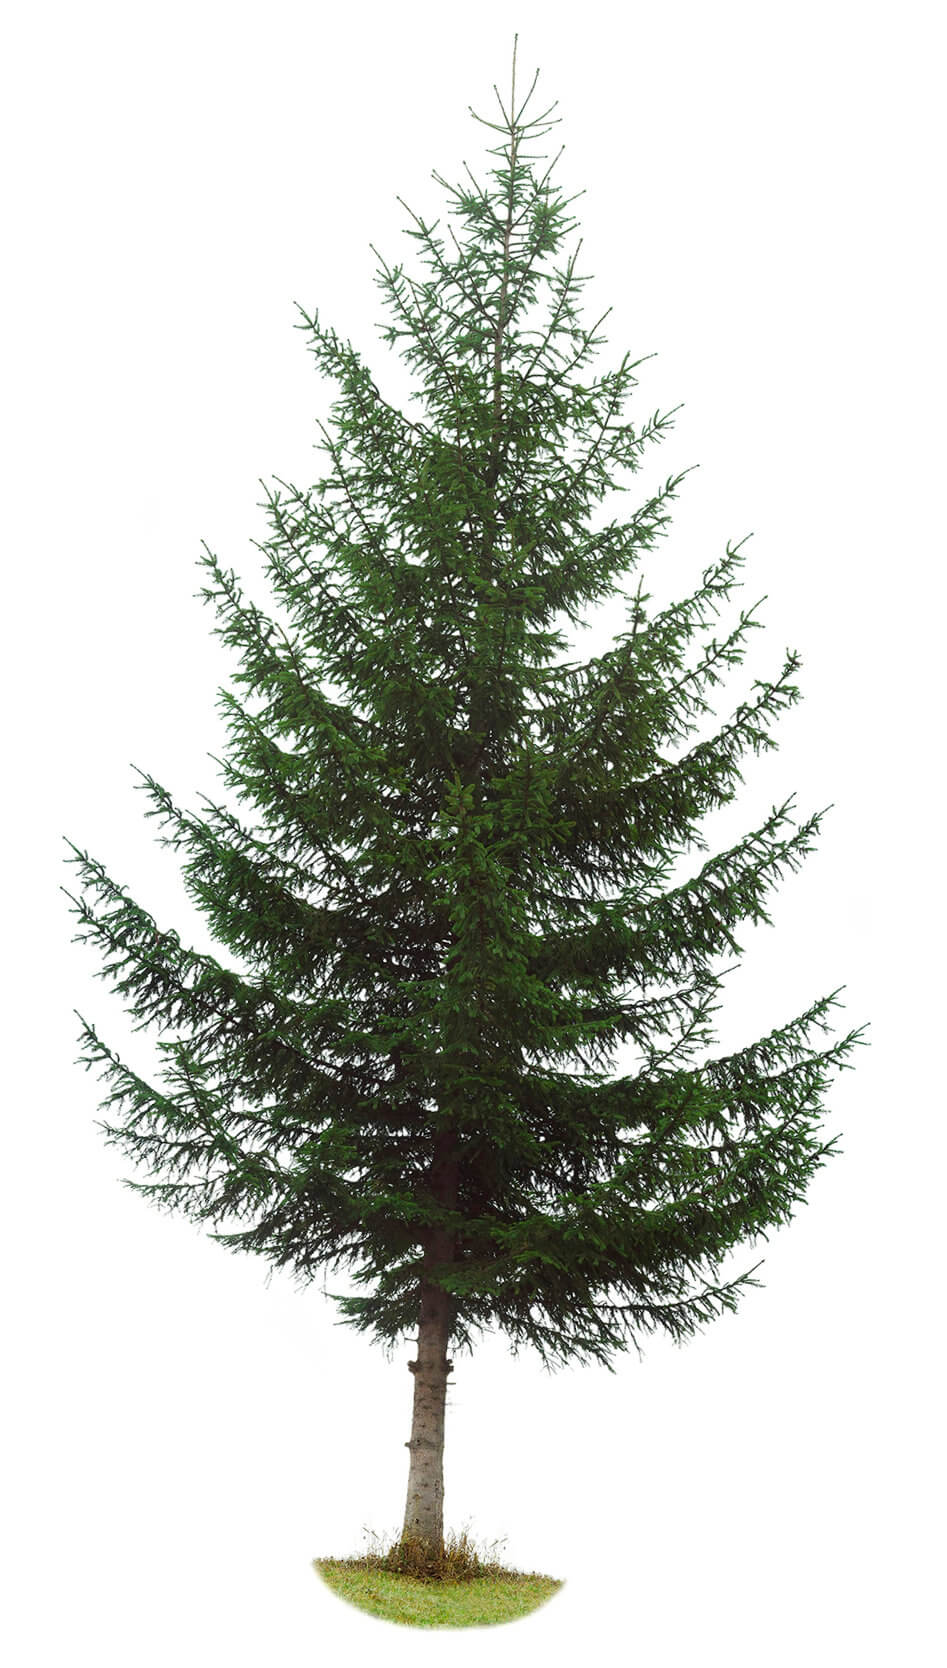 Large evergreen tree